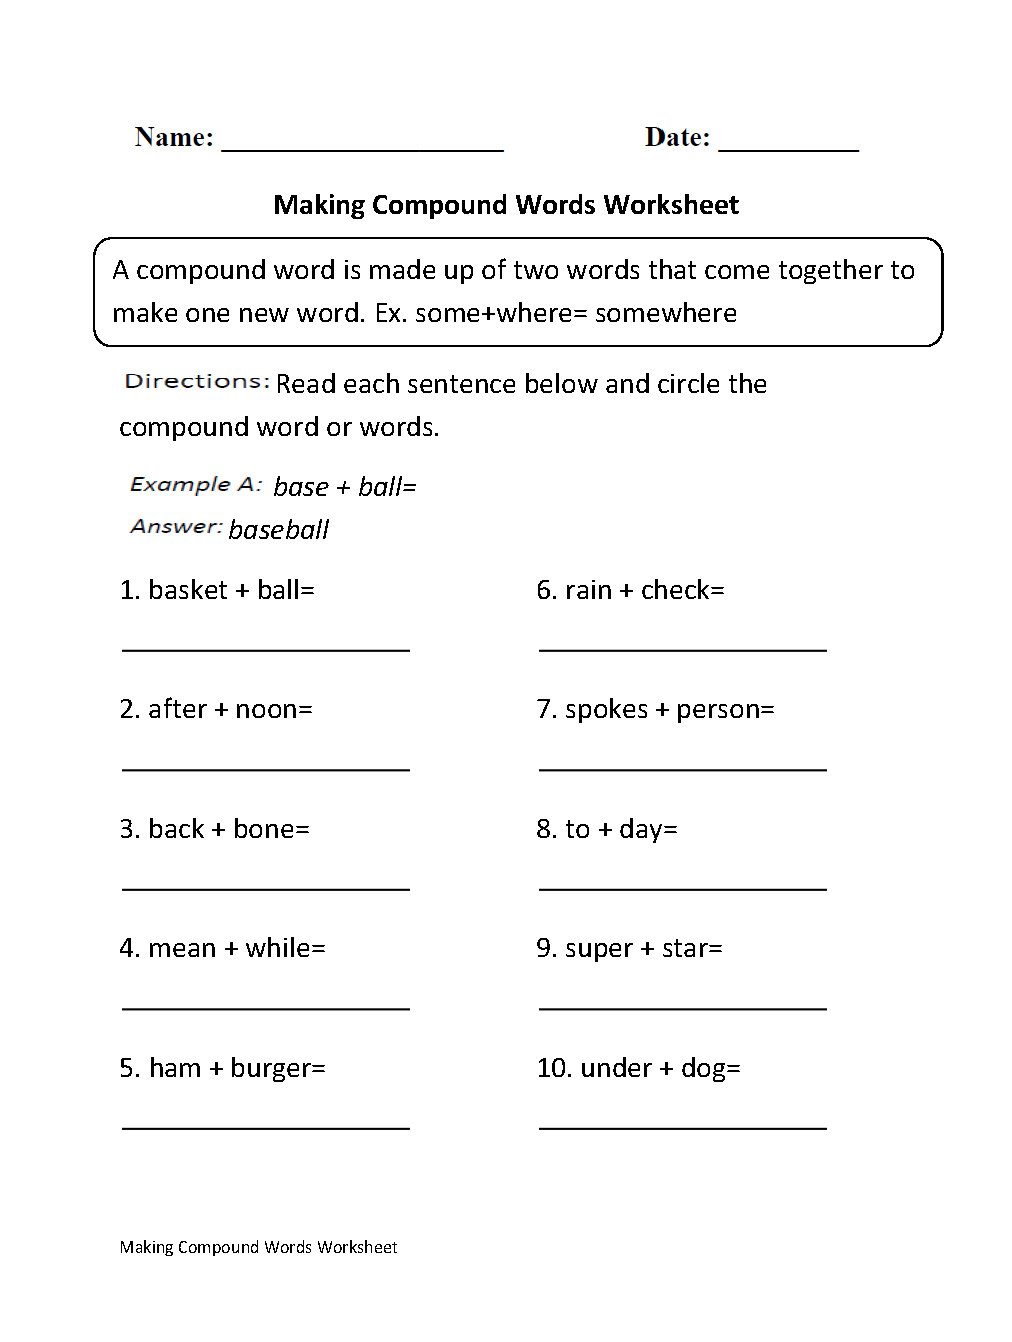 Worksheet Kindergarten Compound Words compound words worksheets making worksheet worksheet